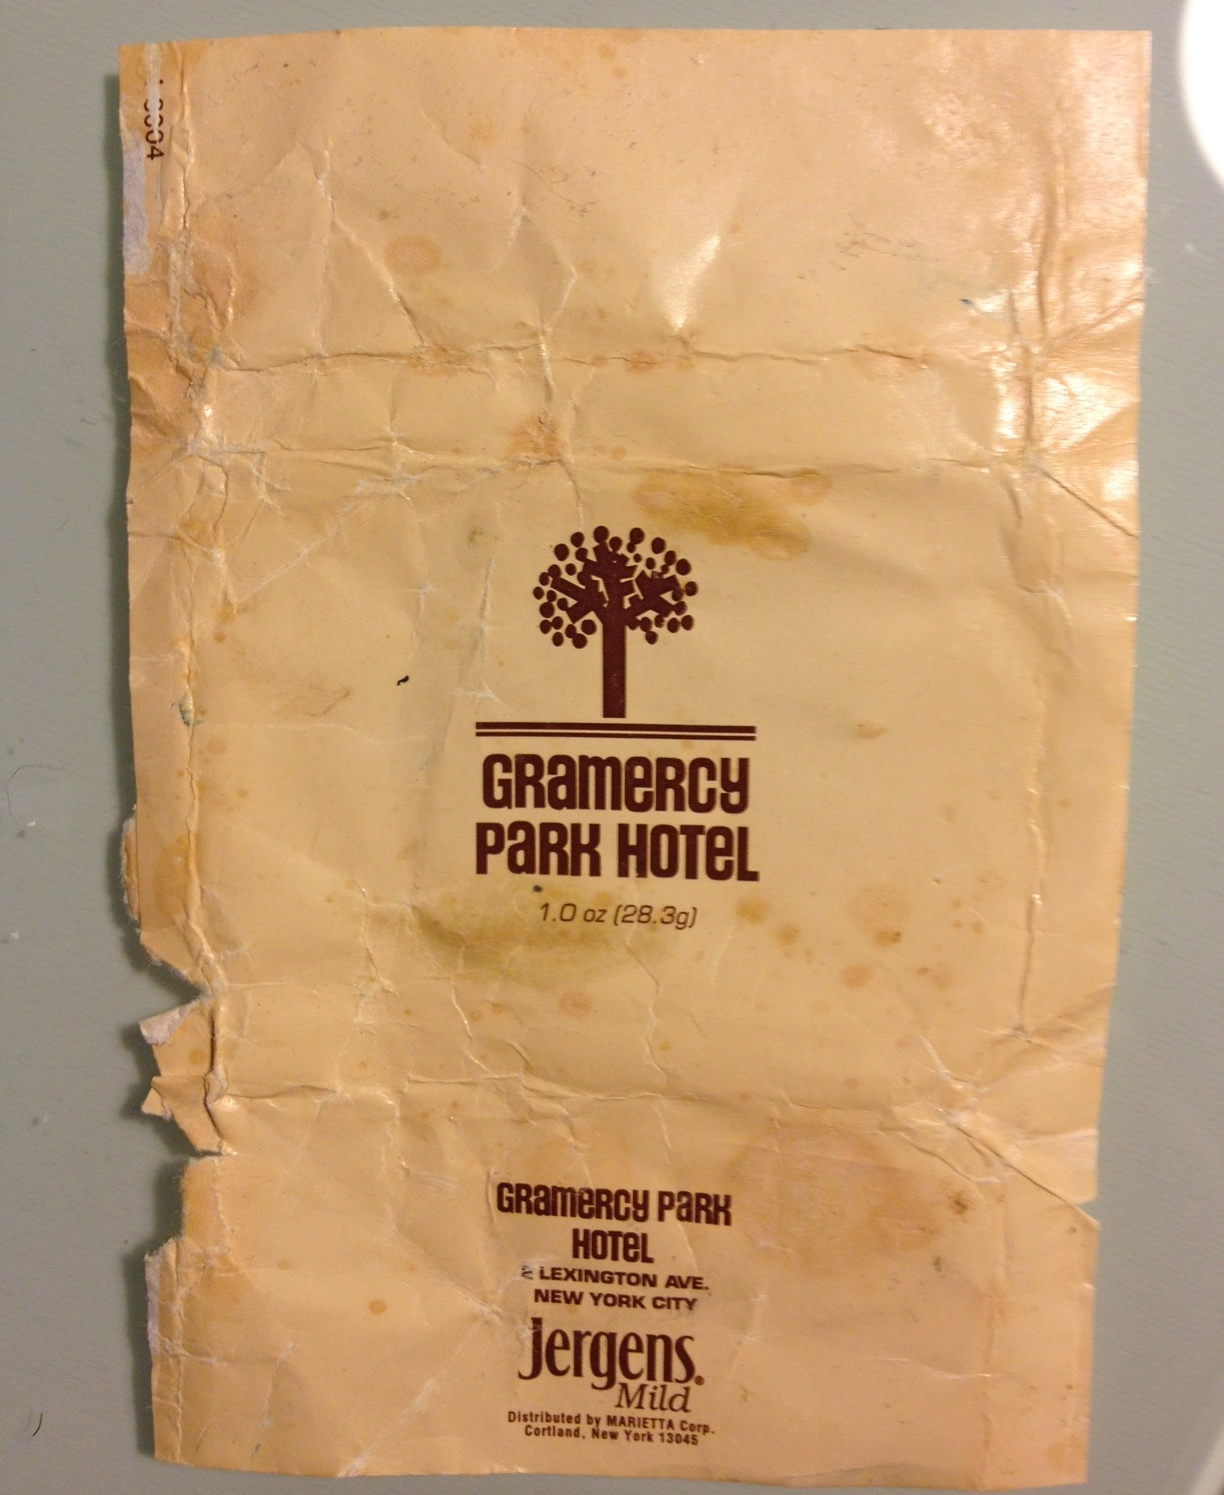 SOAP WRAPPER, GRAMERCY PARK HOTEL (1997)